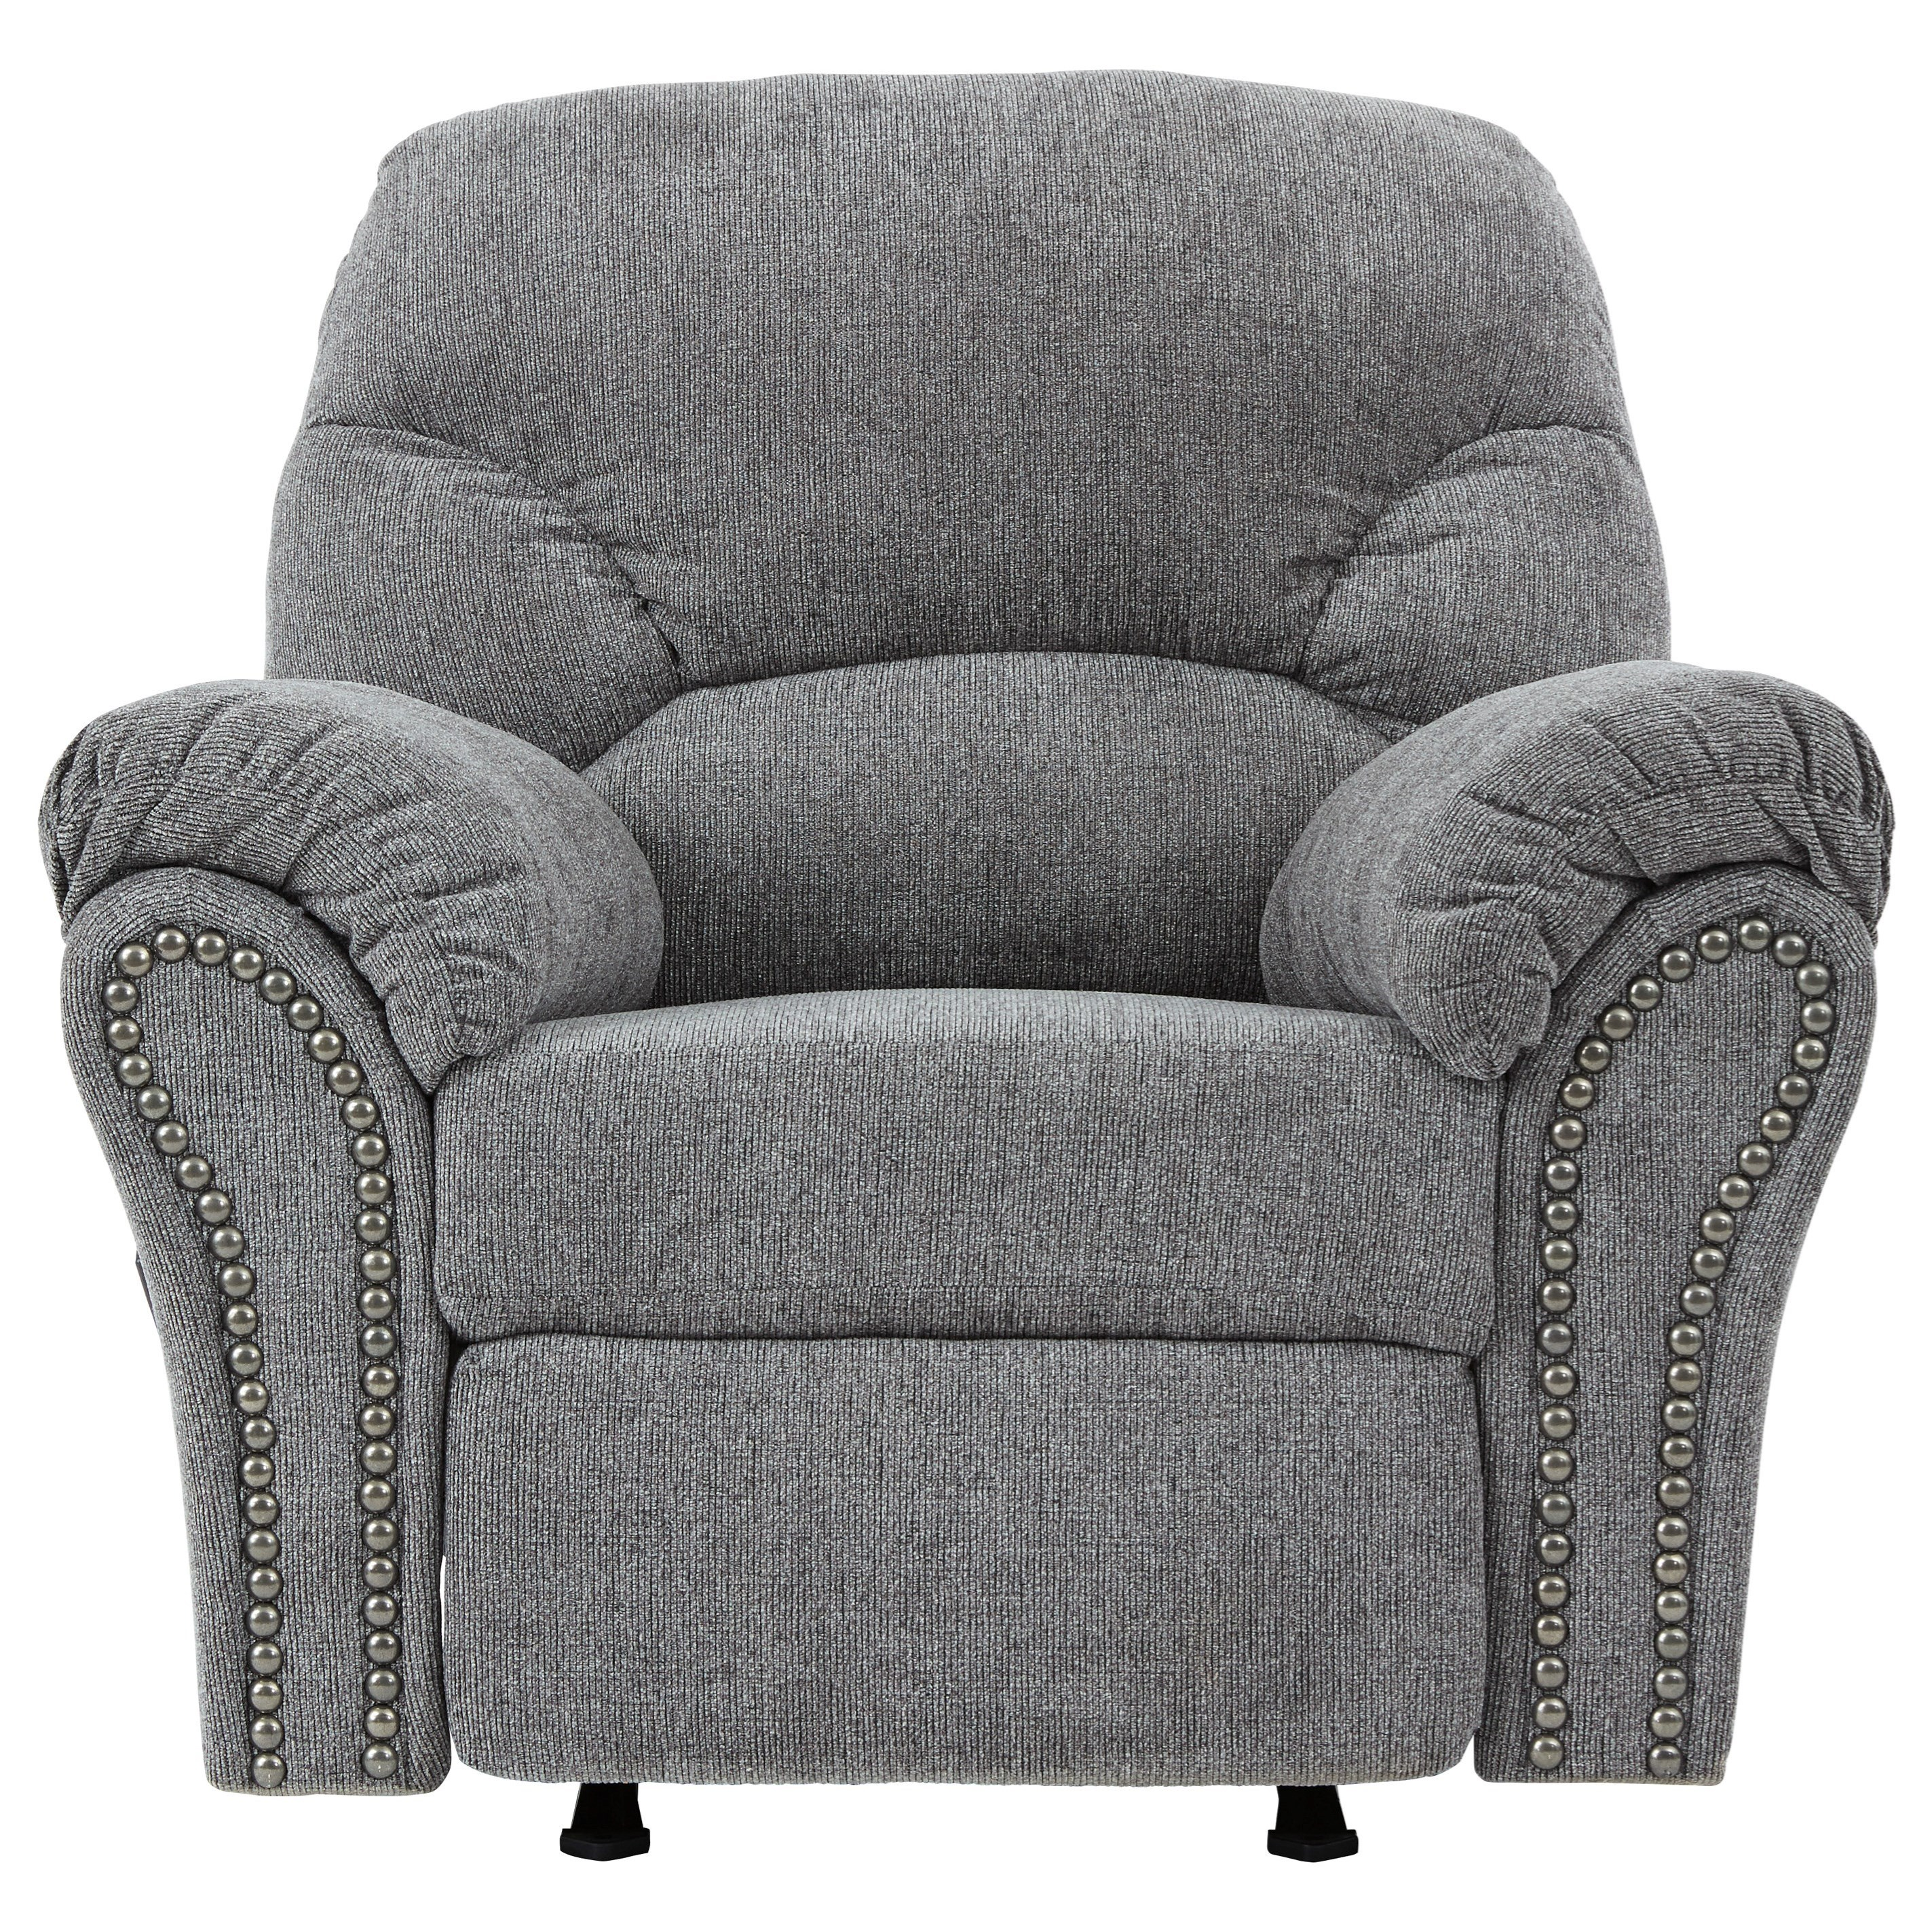 Allmaxx Rocker Recliner by Benchcraft at Van Hill Furniture